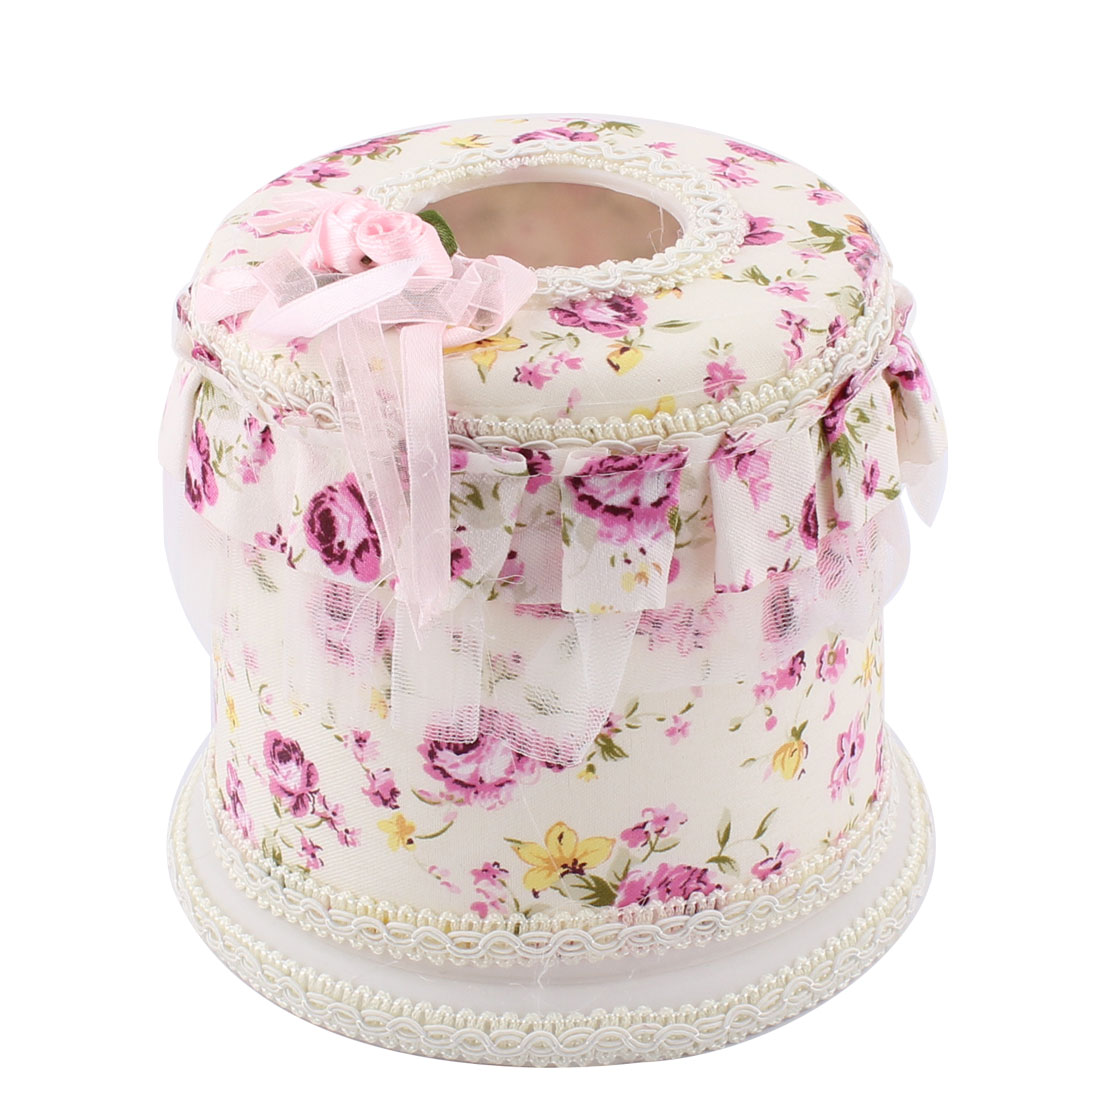 Office Restaurant Flower Pattern Napkin Tissue Case Box Holder Container